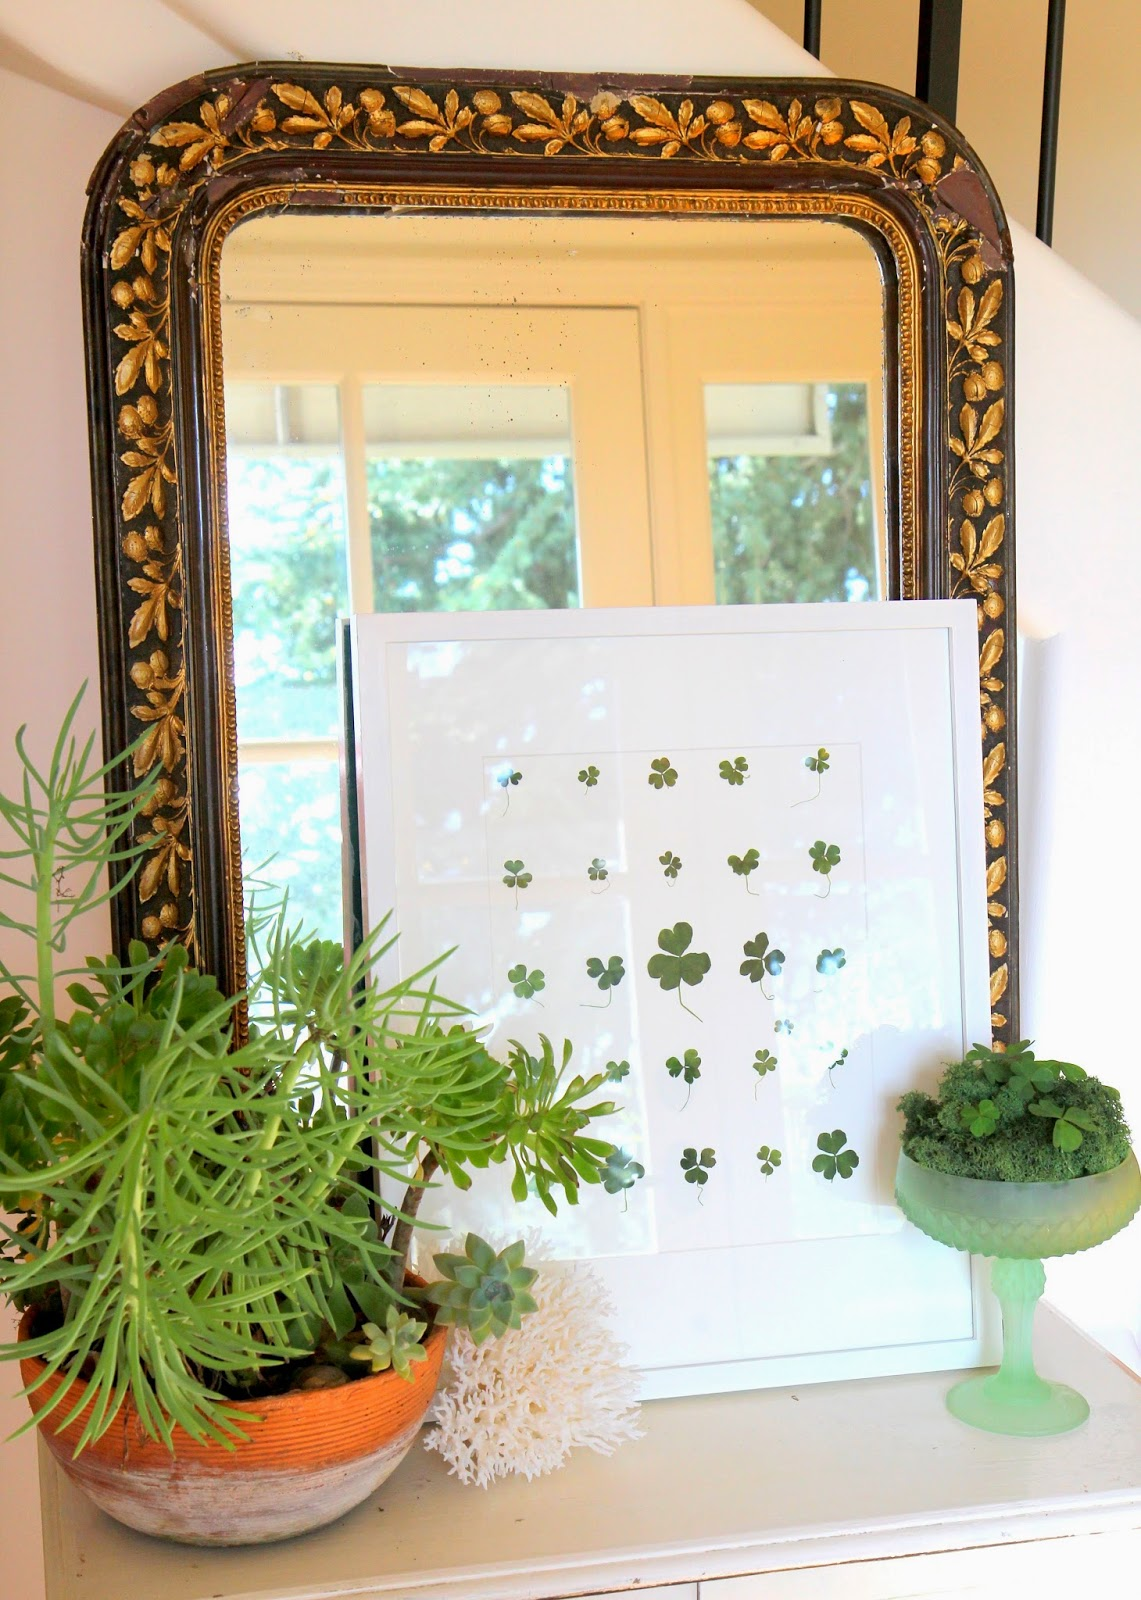 St. Patrick's Day Home Decor with Shamrocks!